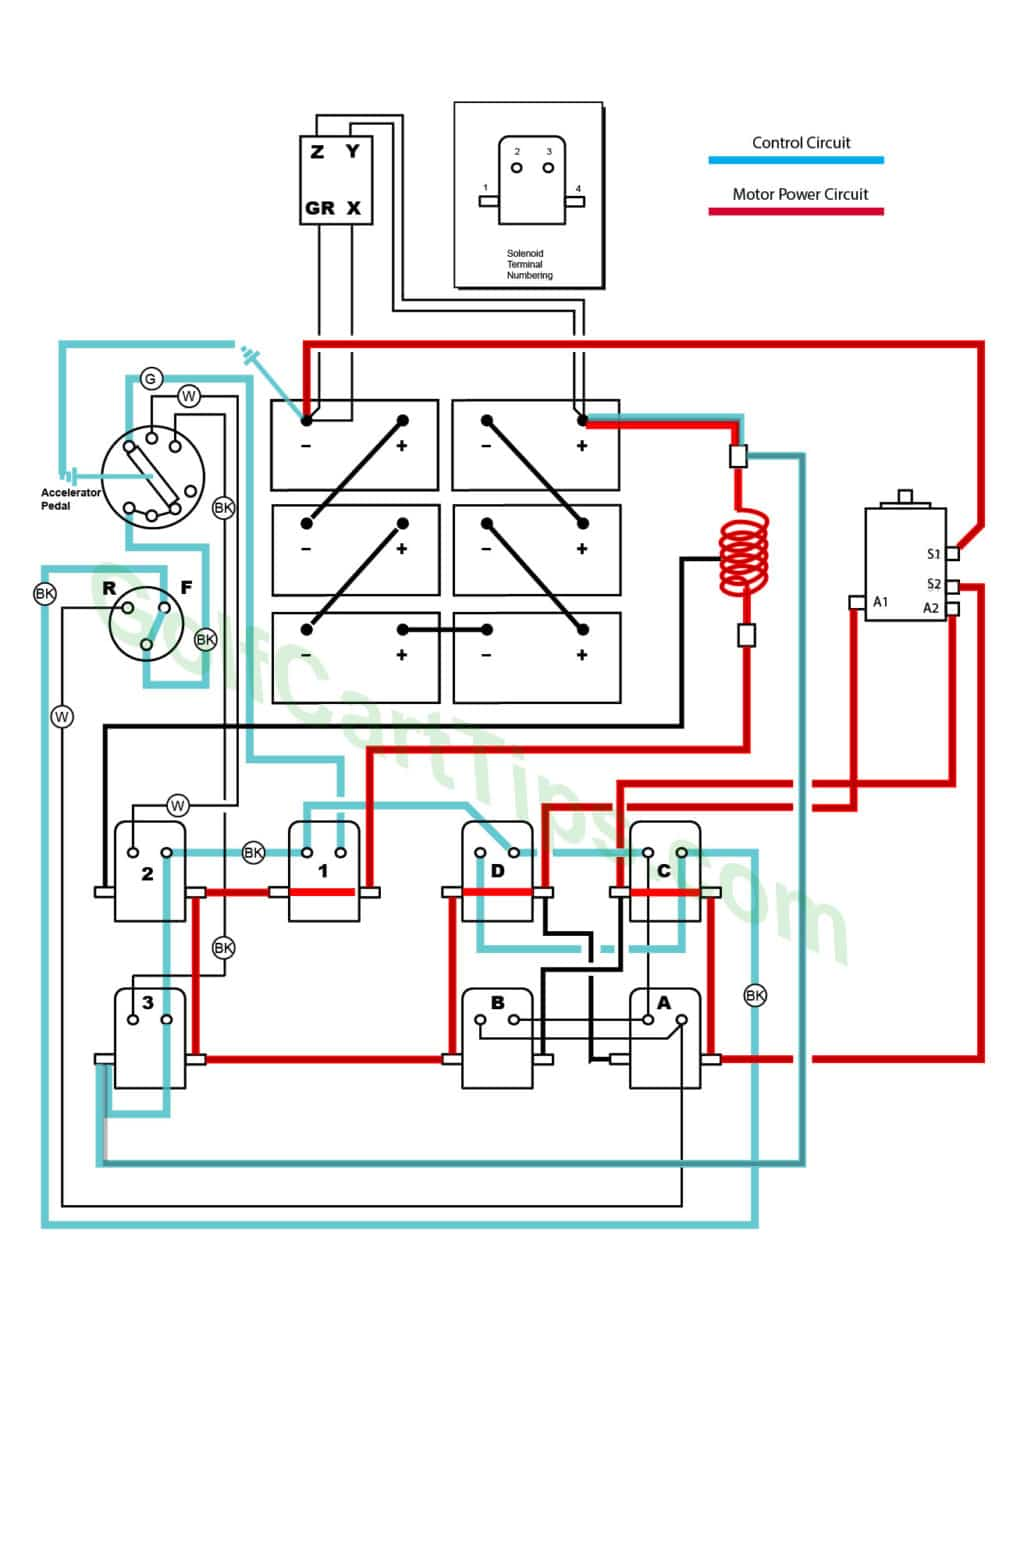 hight resolution of  ezgo wiring diagrams model 300 late 1950 s on 36v golf cart wiring diagram